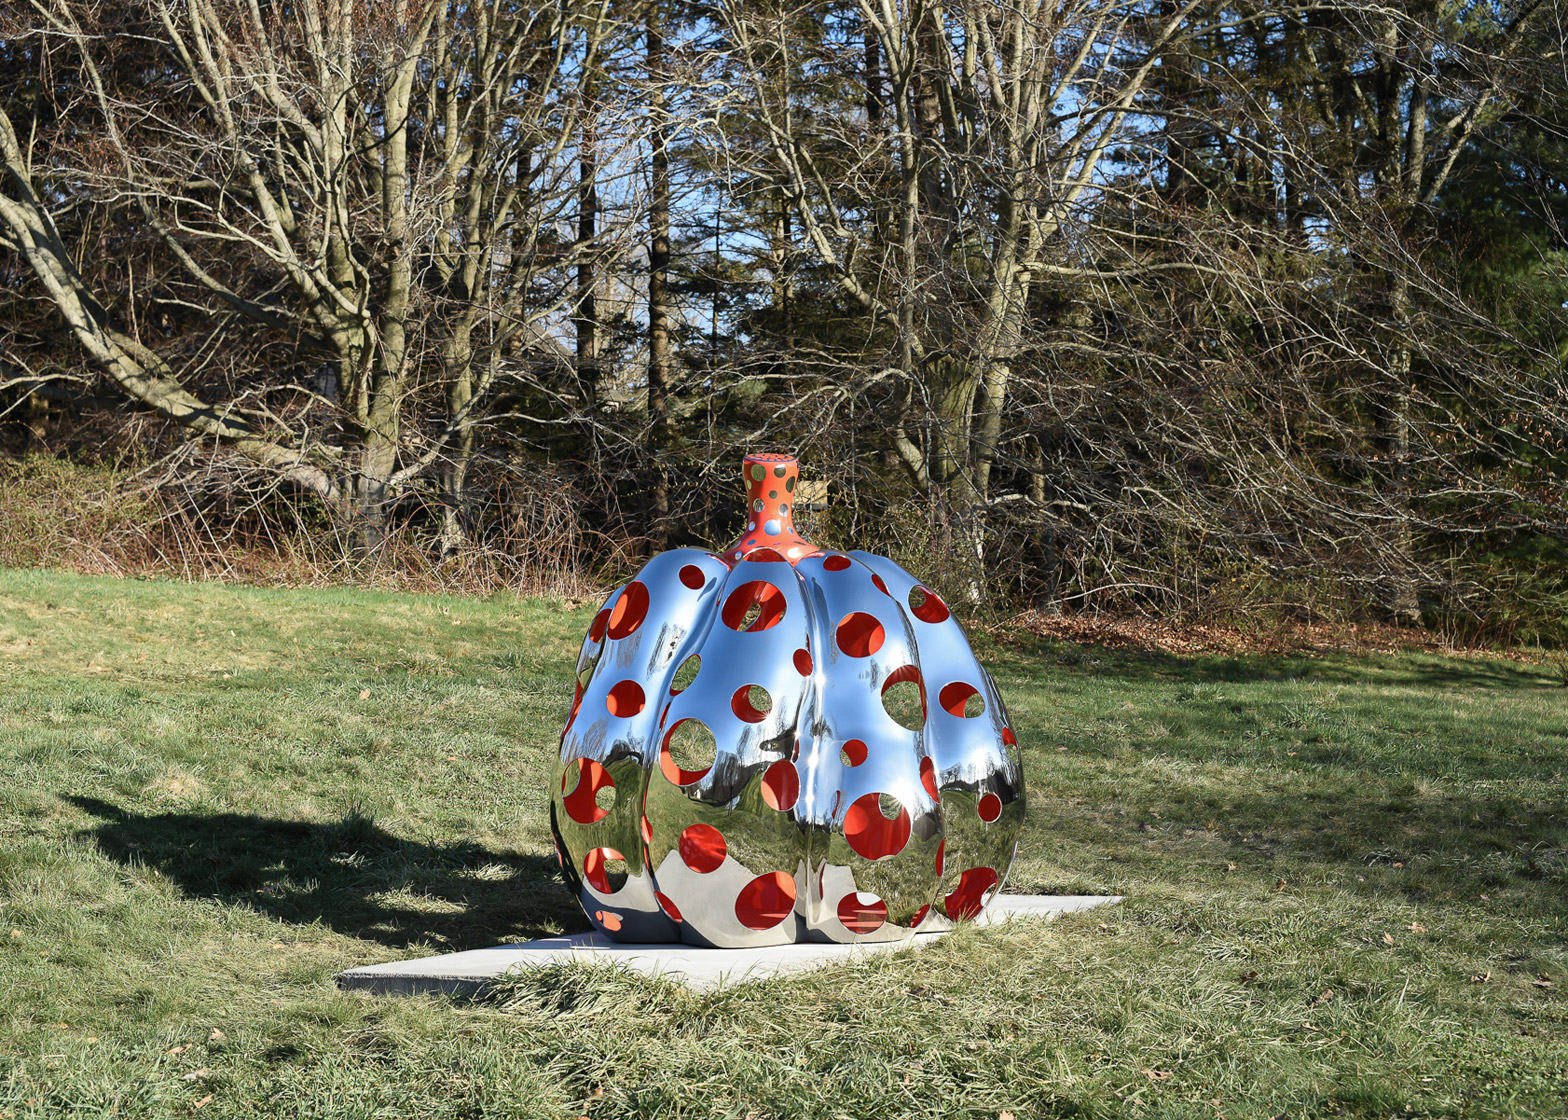 Narcissus Garden sculpture of mirrored spheres by Yayoi Kusama installed at Philip Johnson's Glass House in Connecticut